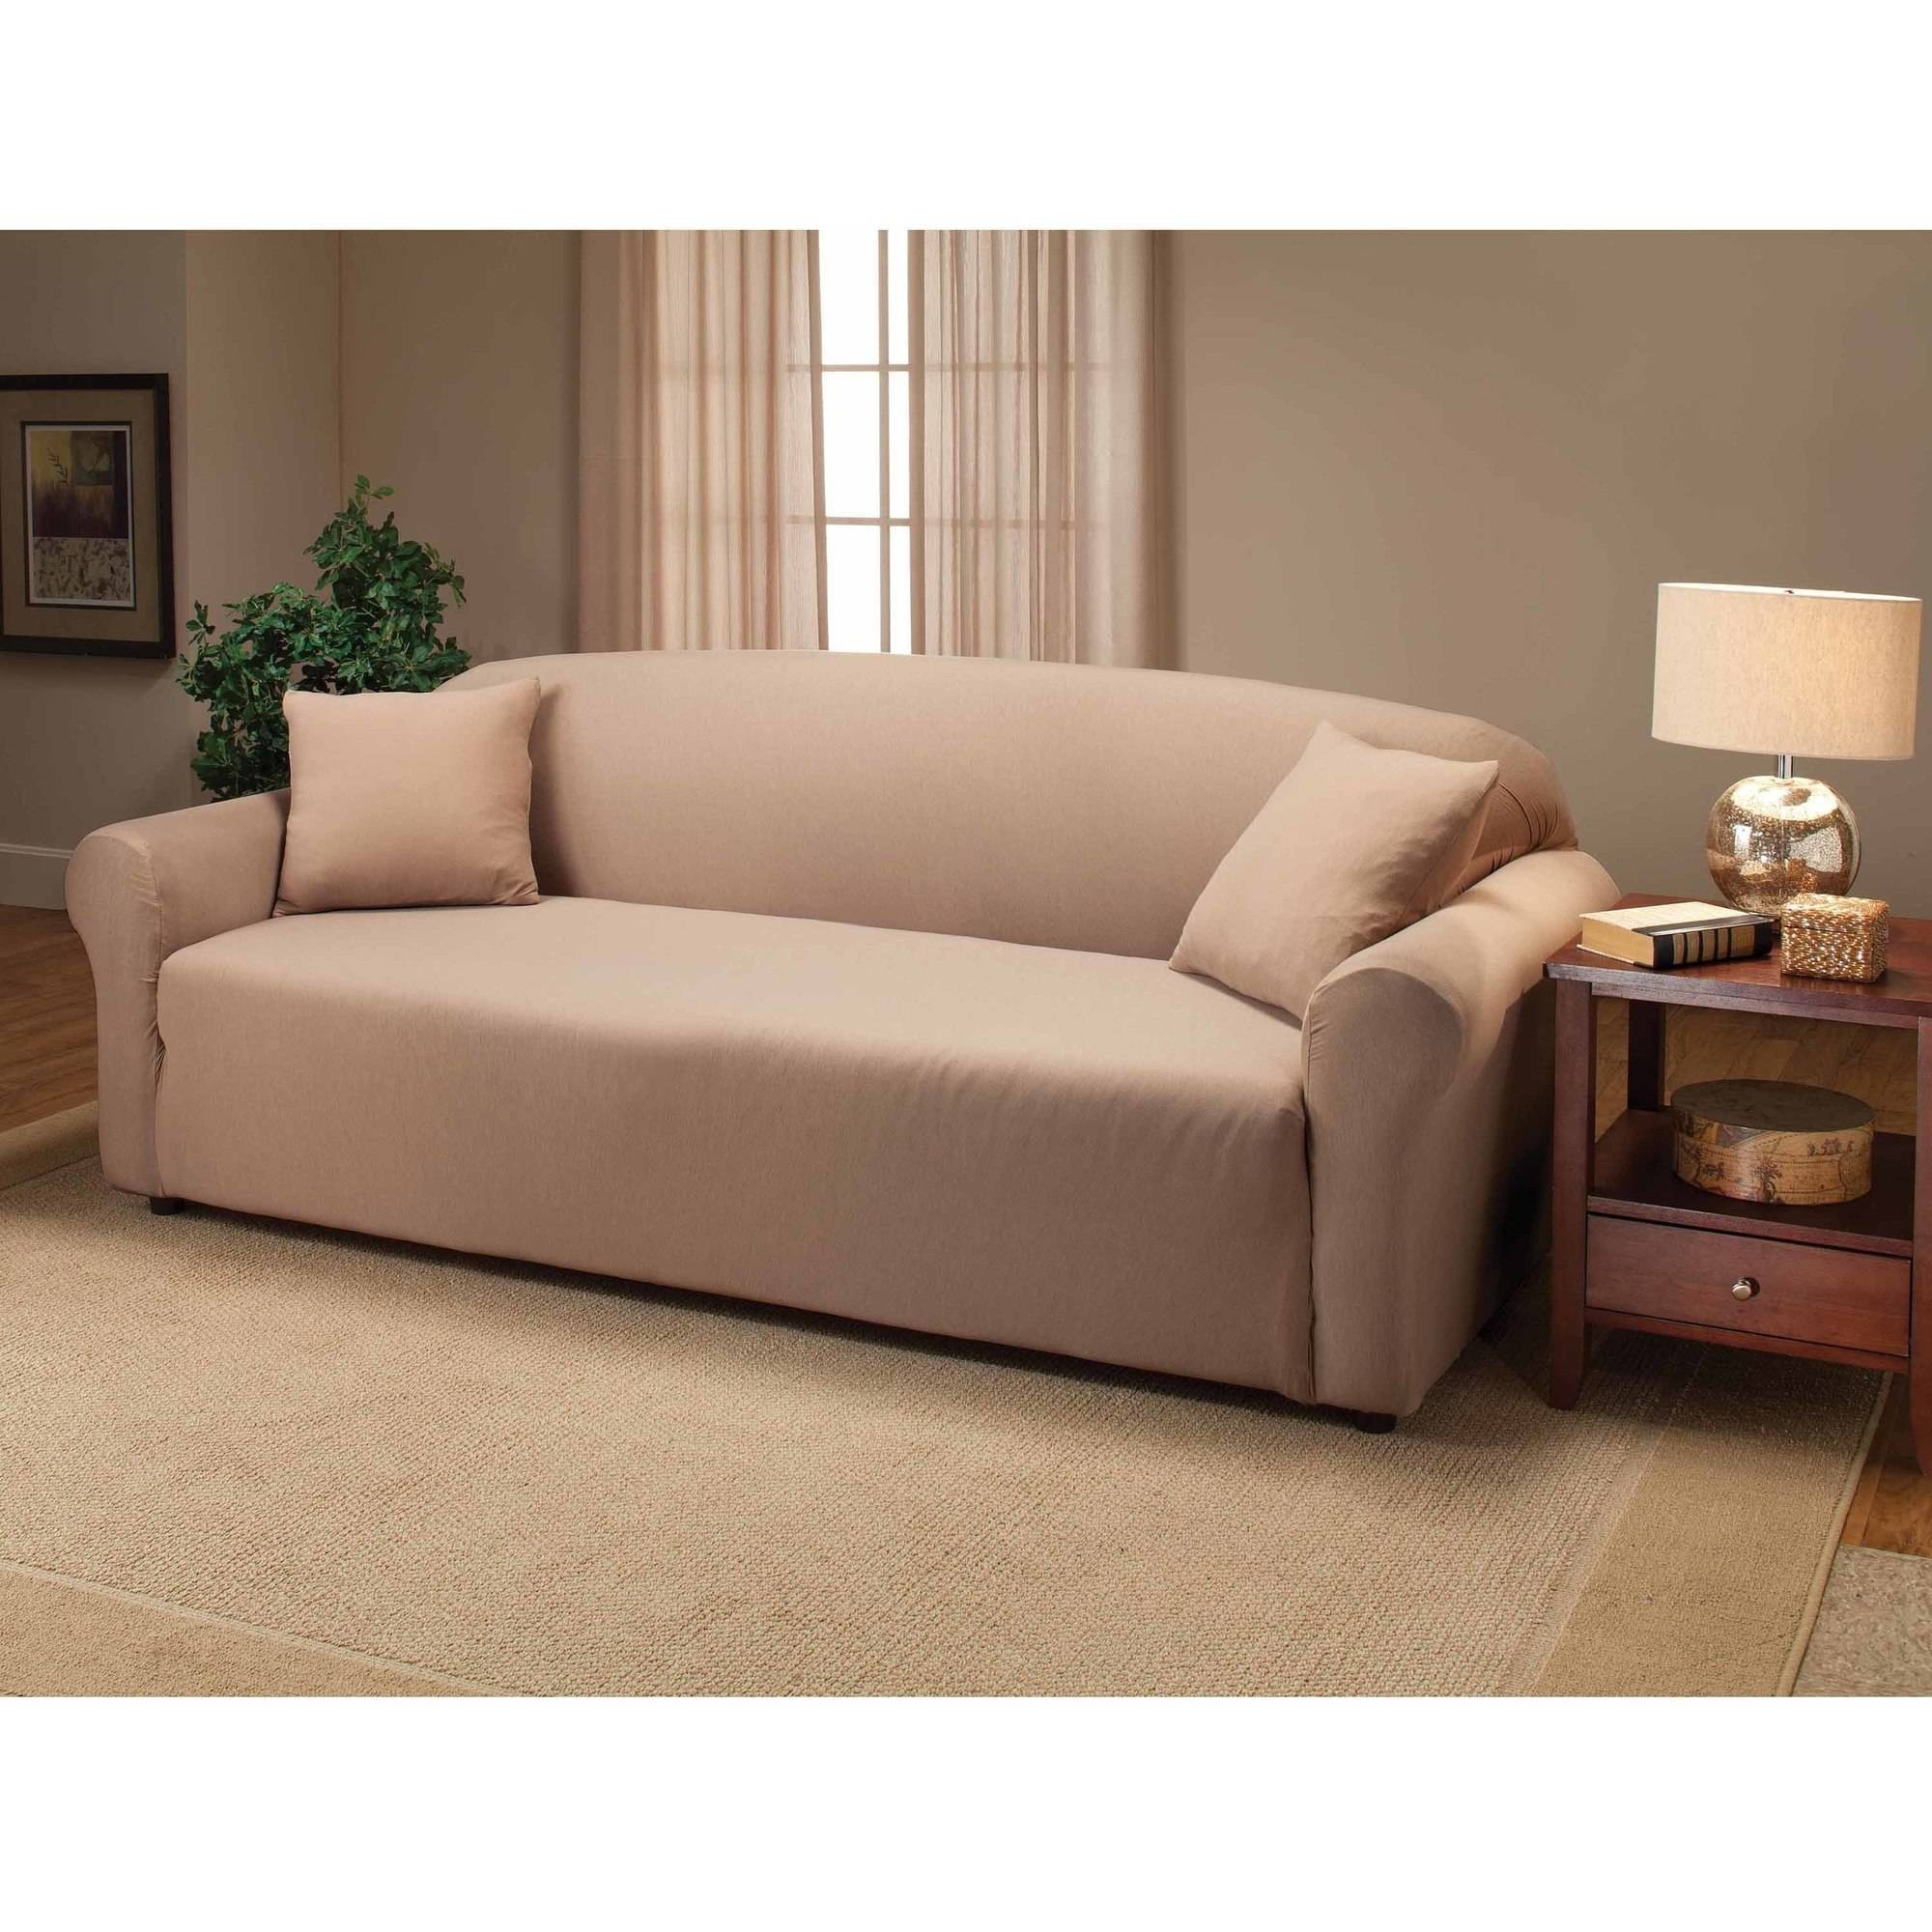 slipcovers sofas sofa for modern in cushion t slipcover